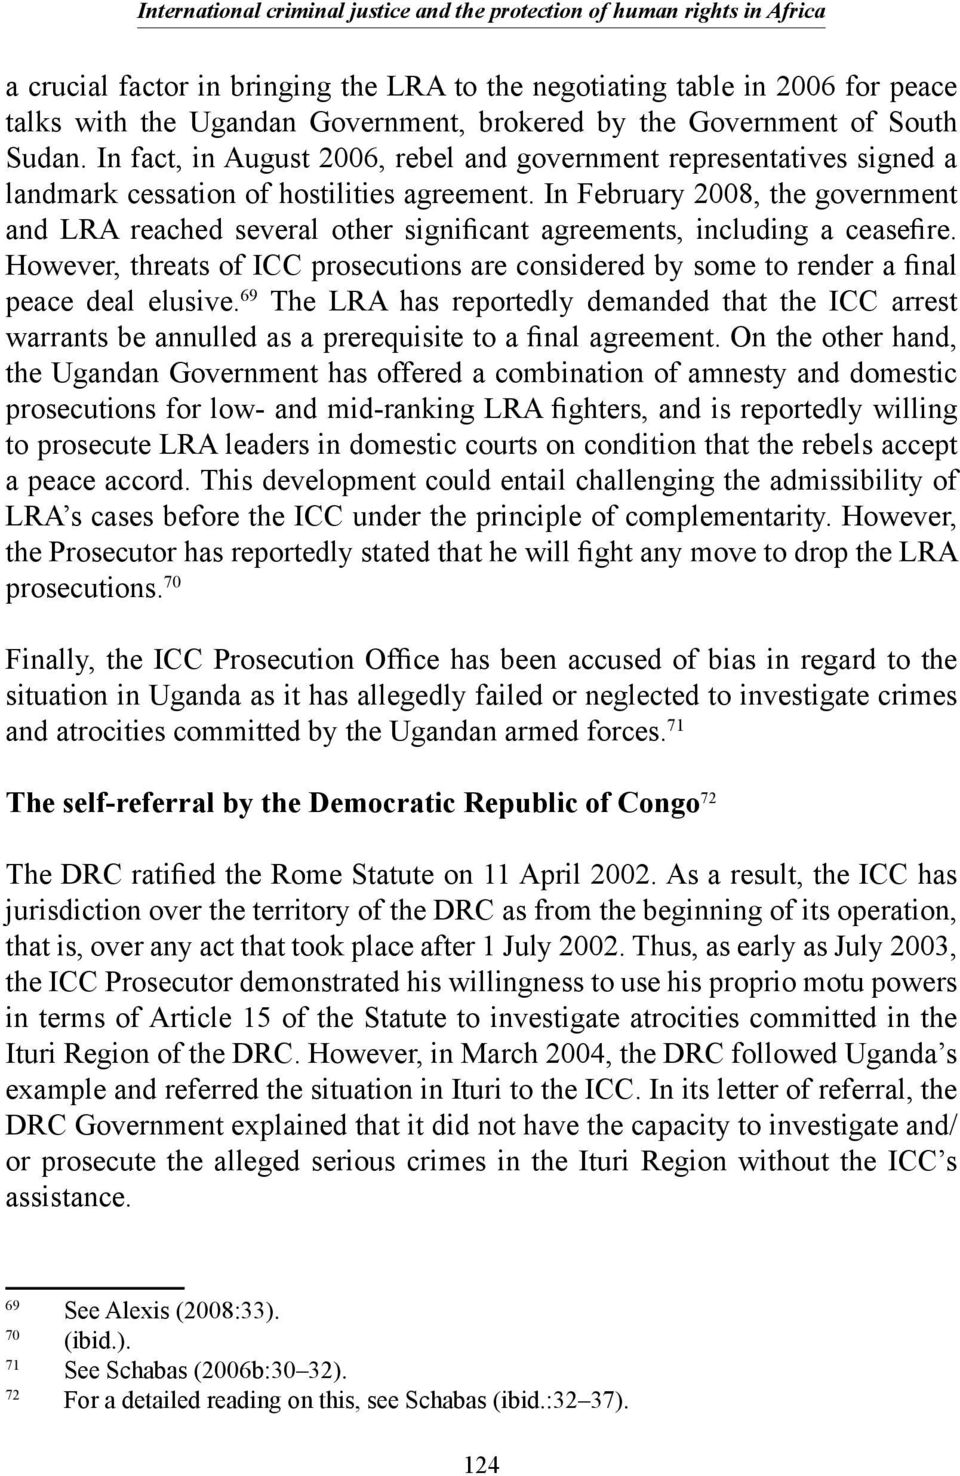 In February 2008, the government and LRA reached several other significant agreements, including a ceasefire.